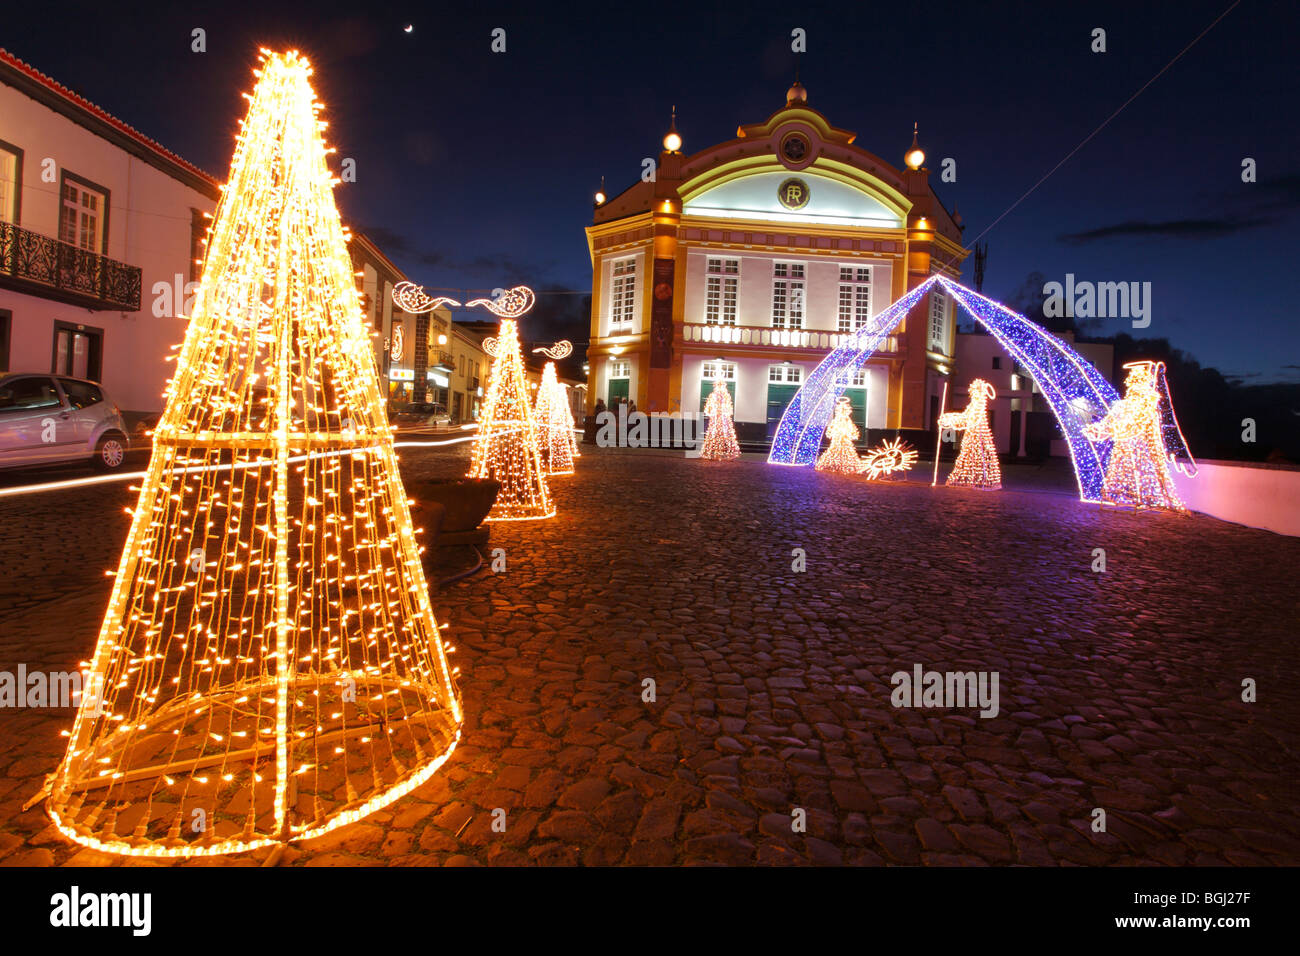 the theater building and some christmas decorations in the city of ribeira grande azores islands portugal